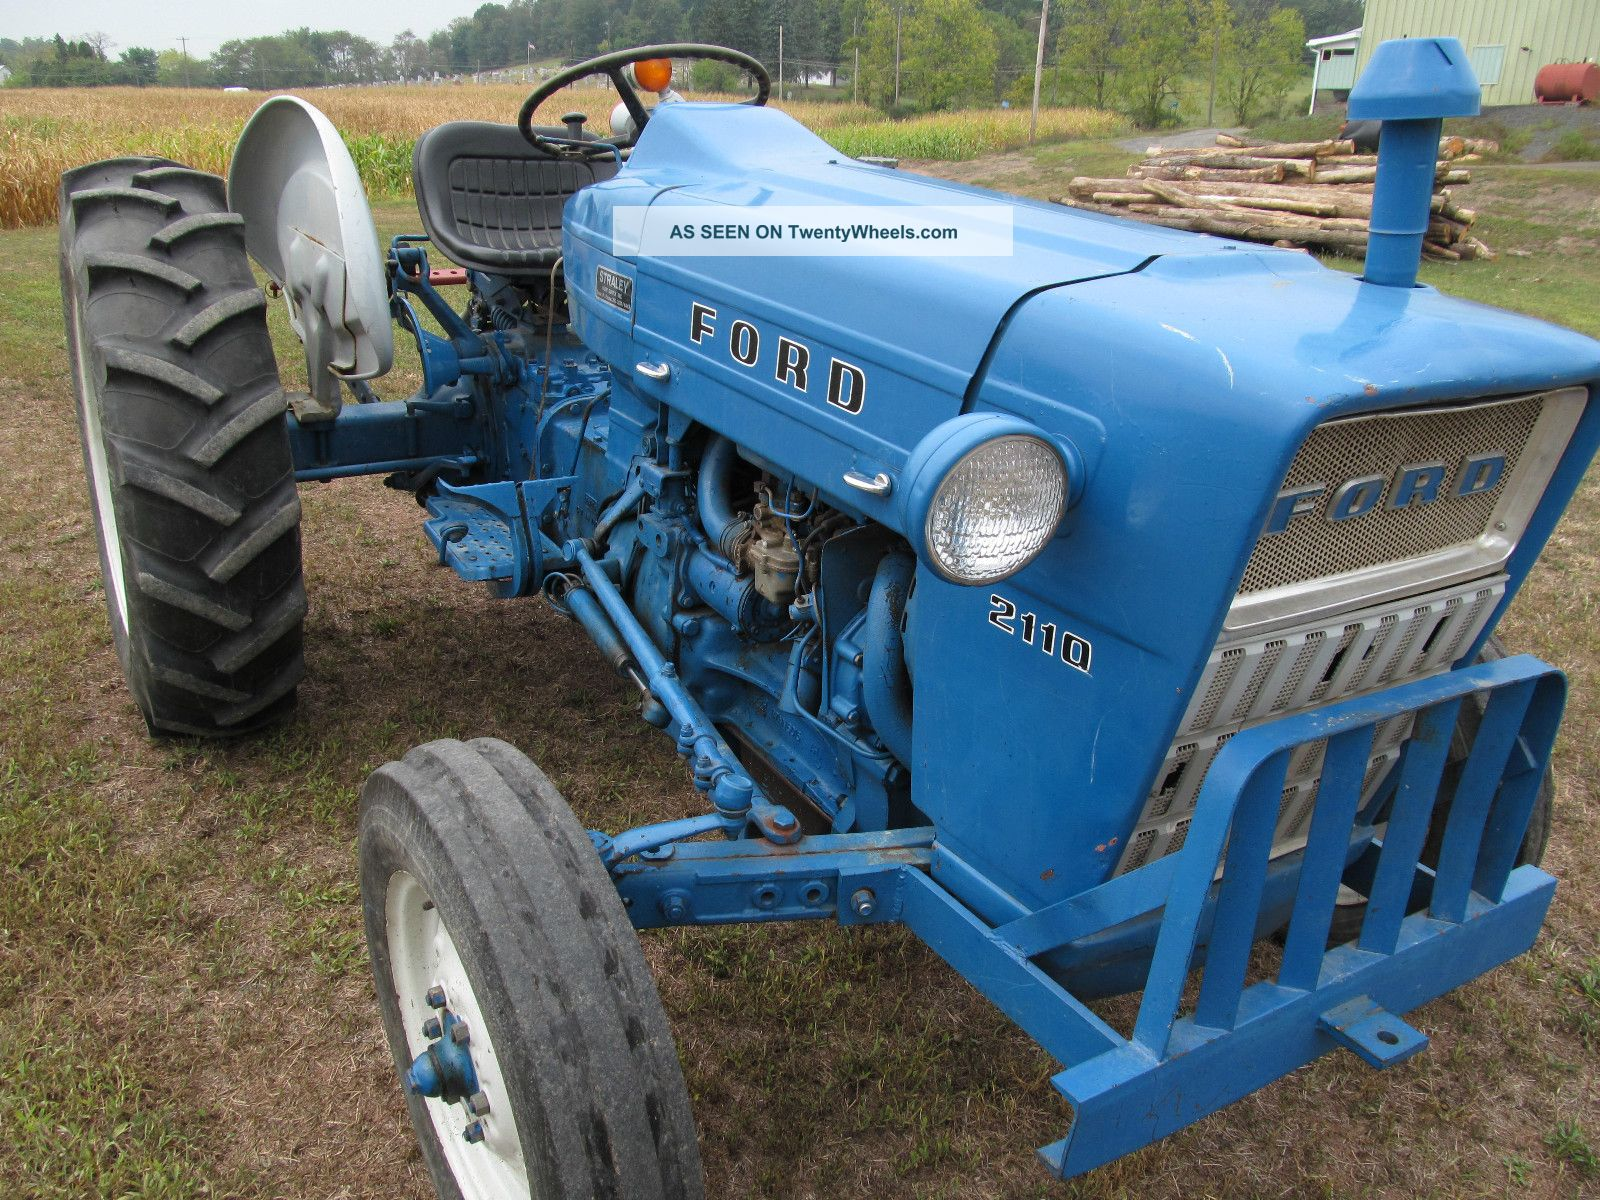 Ford 2110 Tractor : Ford industrial tractor hp pt hitch power